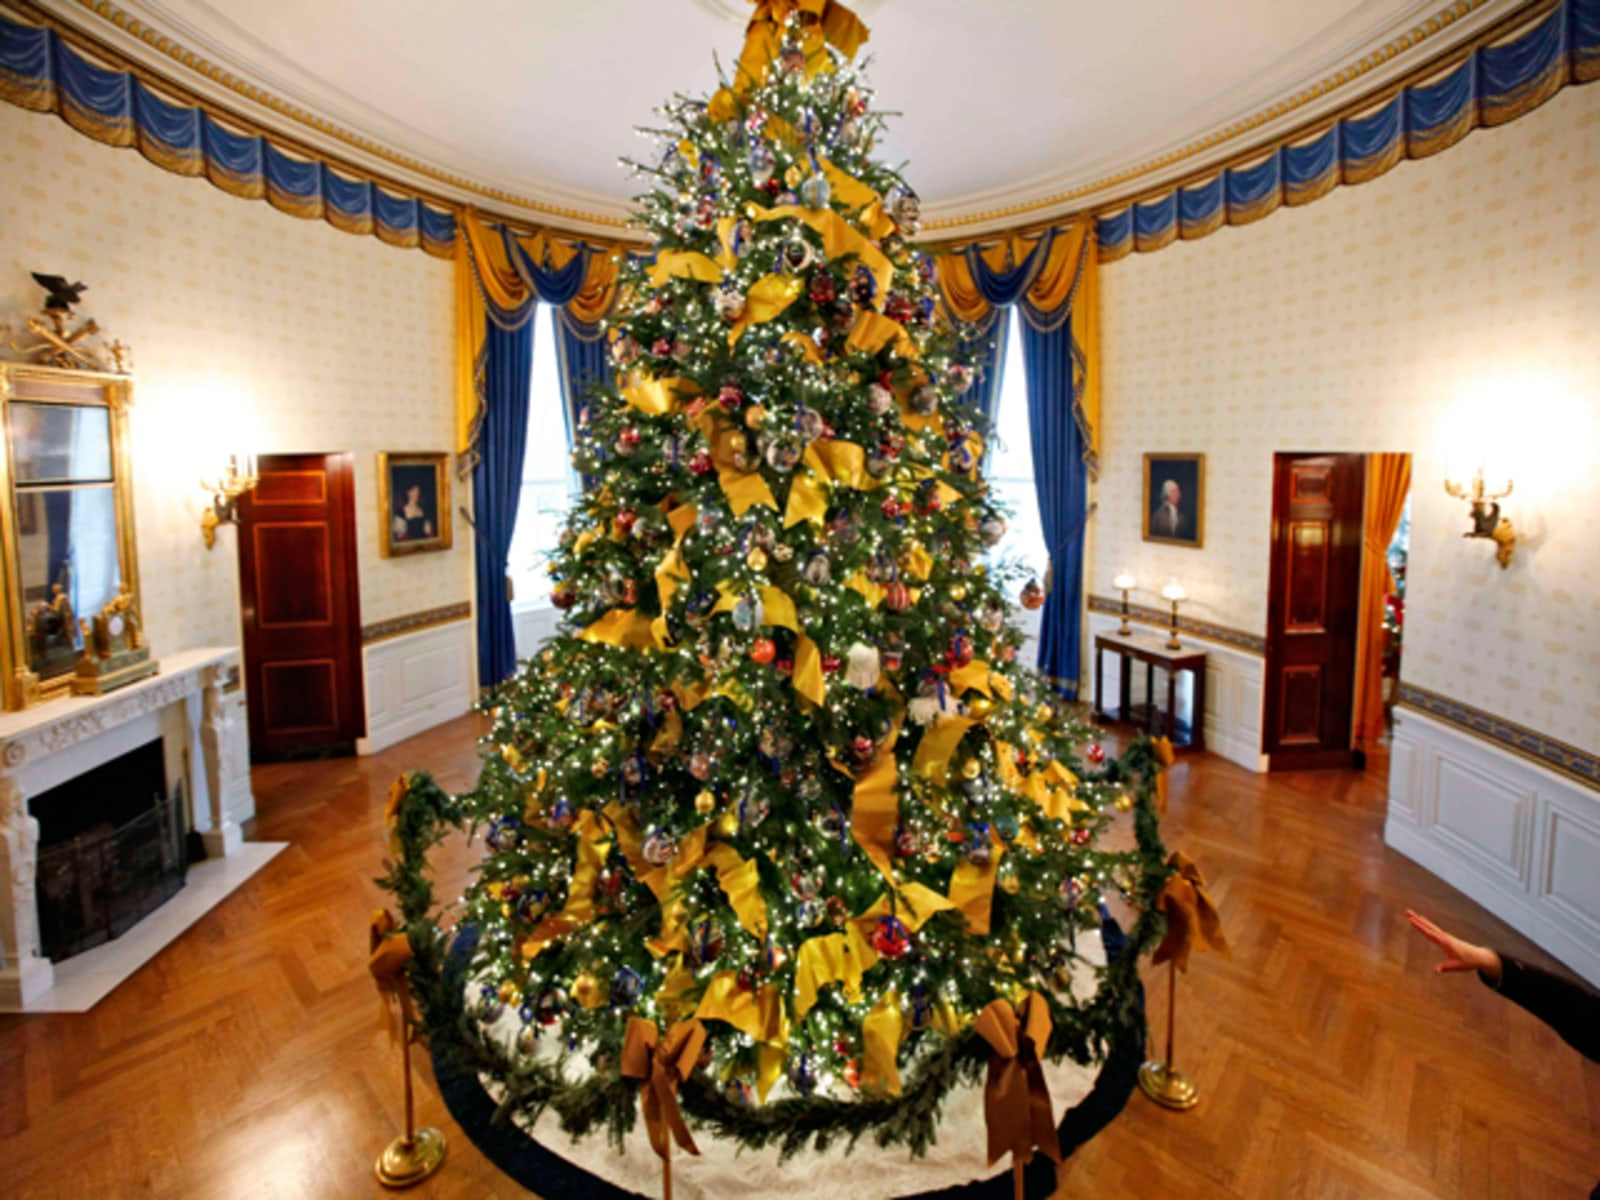 Image: Christmas at the White House